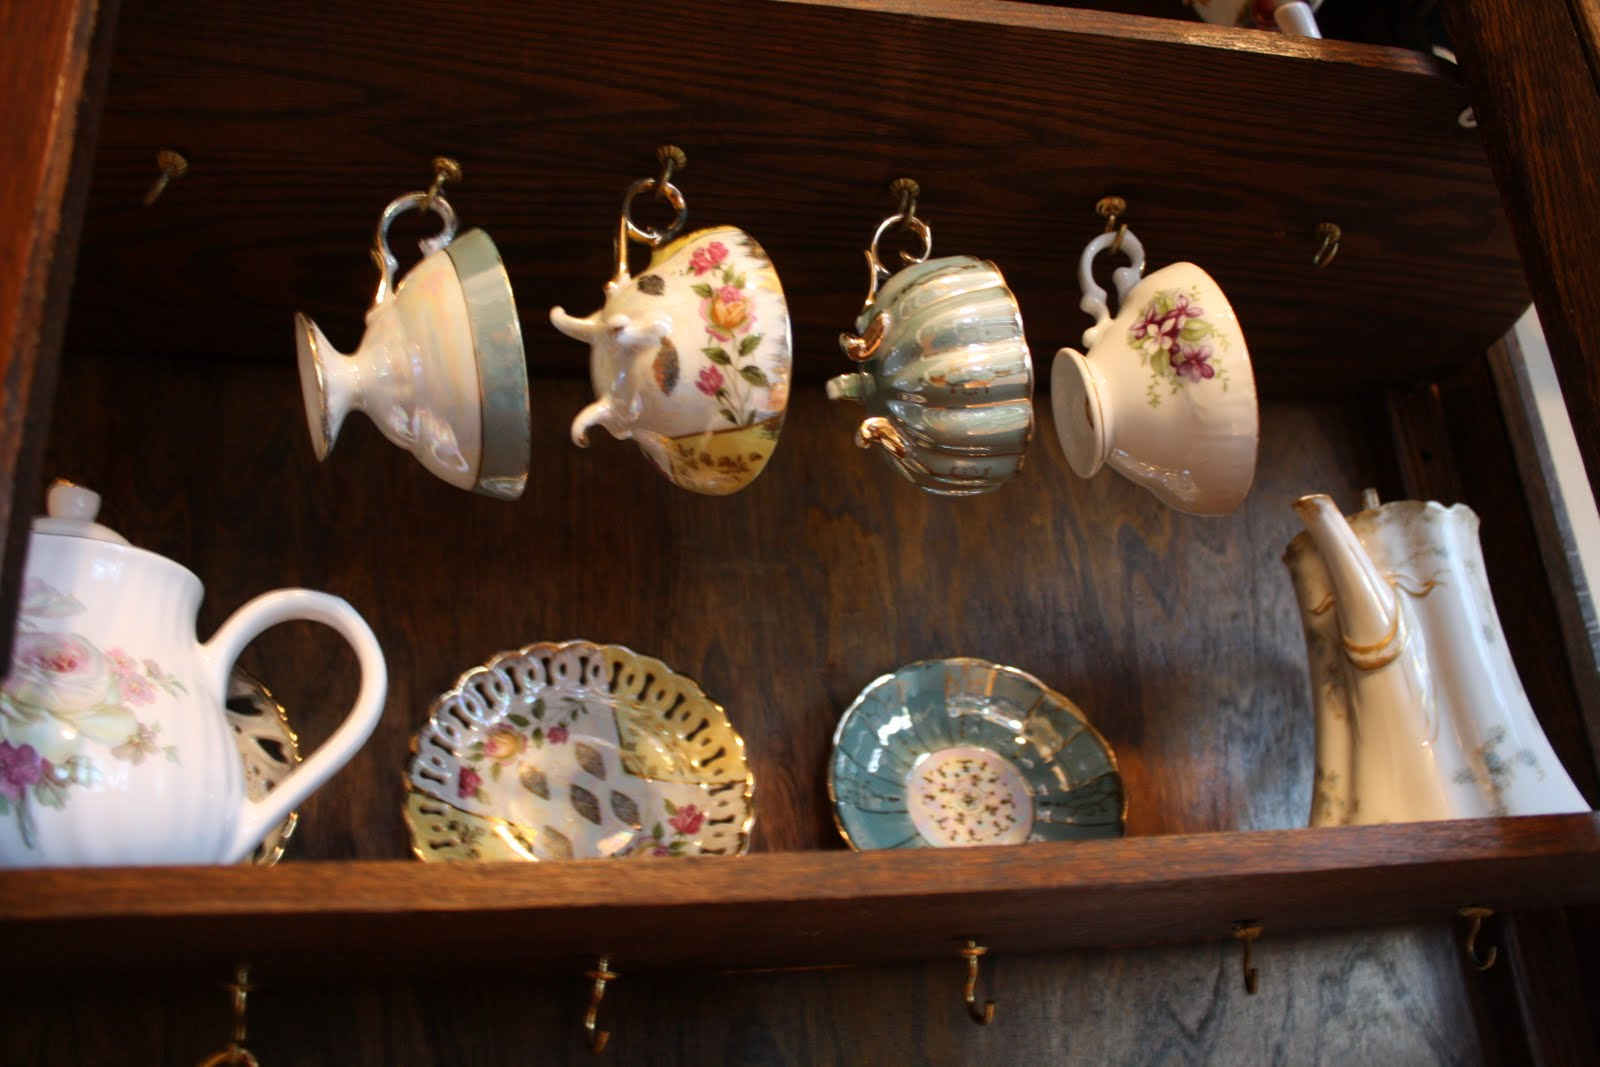 I Was Pleased To Find Out That Three Of The Shelves Had Hooks For Hanging  Teacups. I Immediately Took Out My Favorites And Hung Them Up.